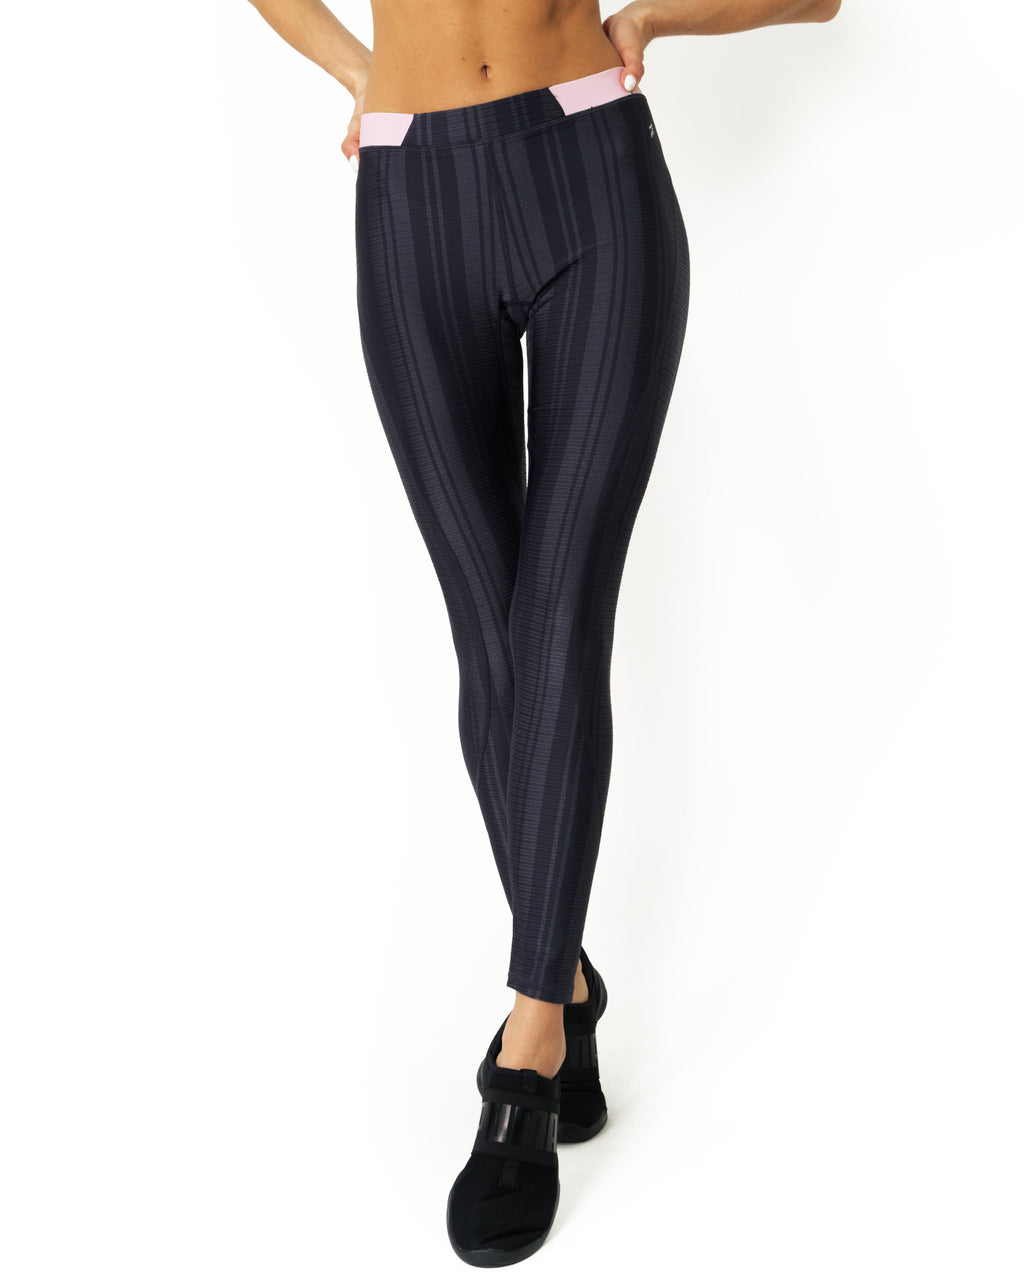 Greyson Leggings - KATANA FASHION BOUTIQUE